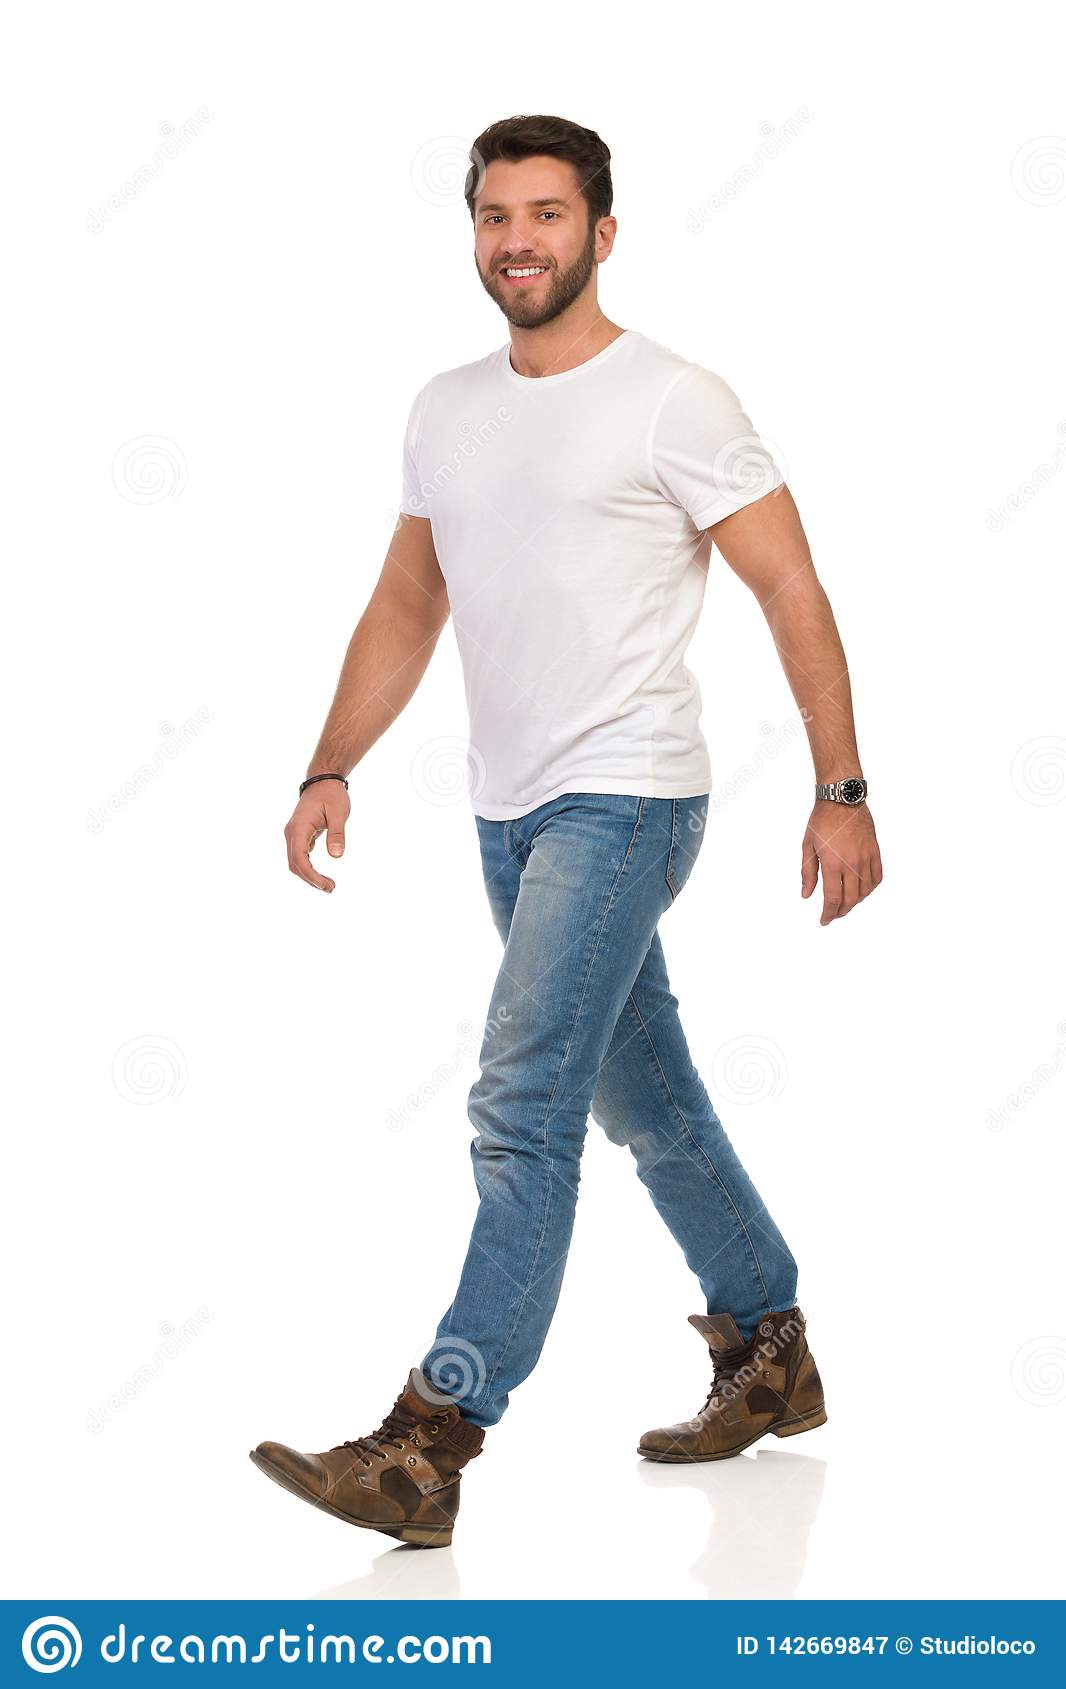 Smiling Man In White T,shirt, Jeans And Boots Is Walking